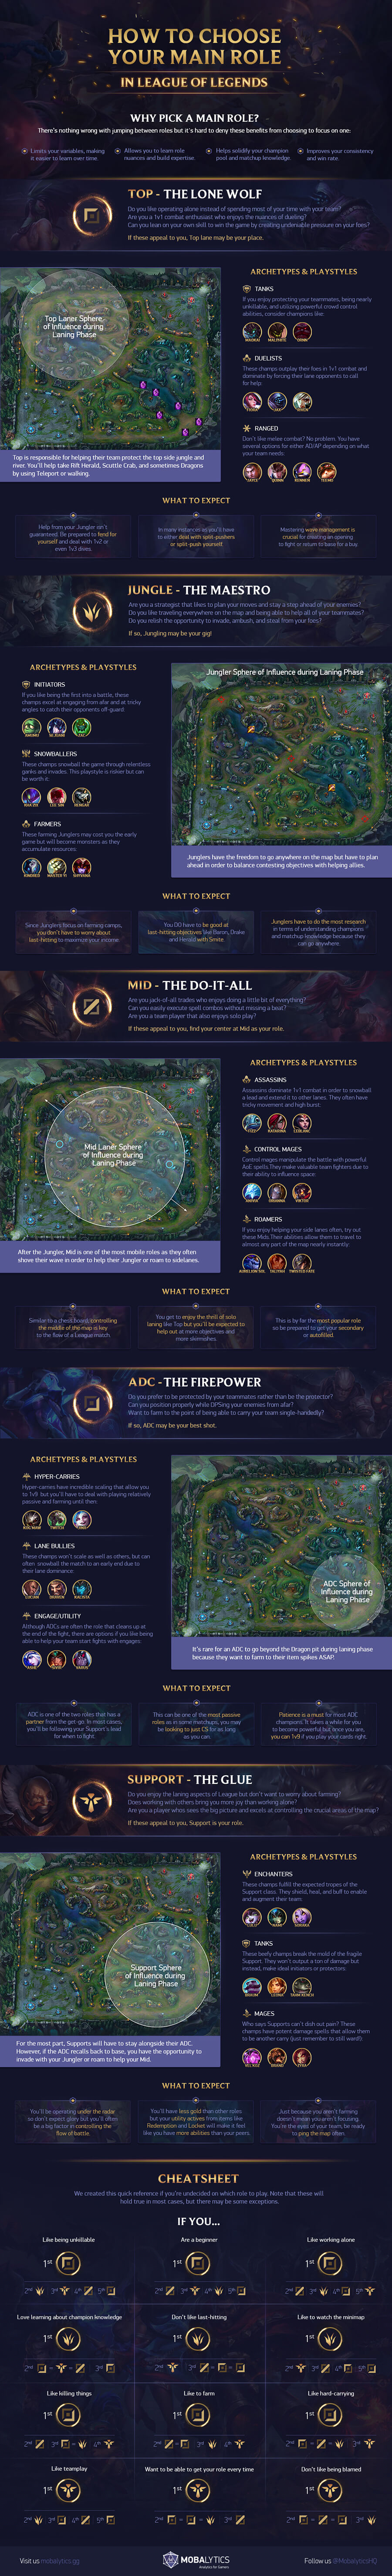 How to Choose Your Main Role in League of Legends (infographic)